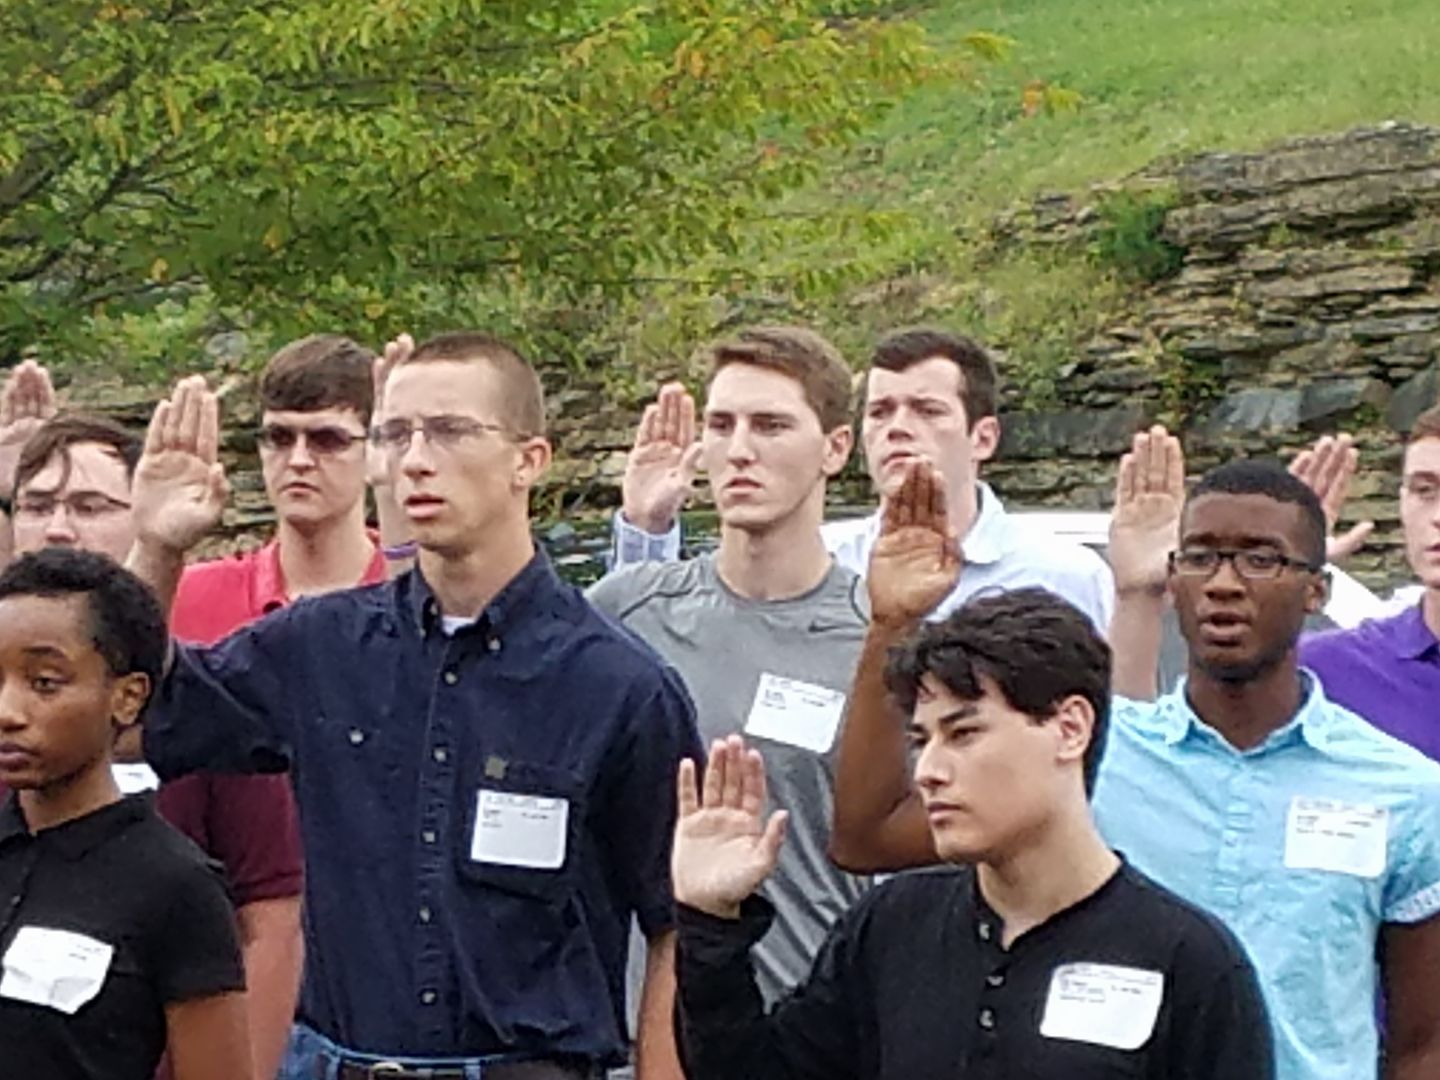 Shrader, center, taking his oath for the Army (Source: Facebook, taken with permission from The Shrader Family)<p></p>